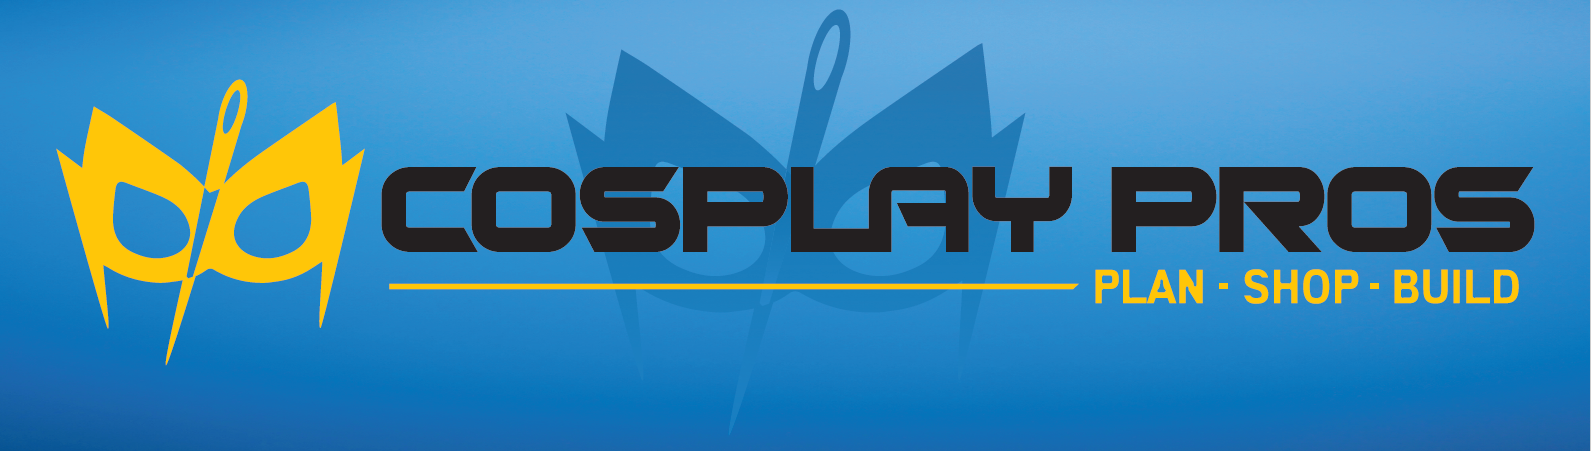 Cosplay Pros Banner Logo